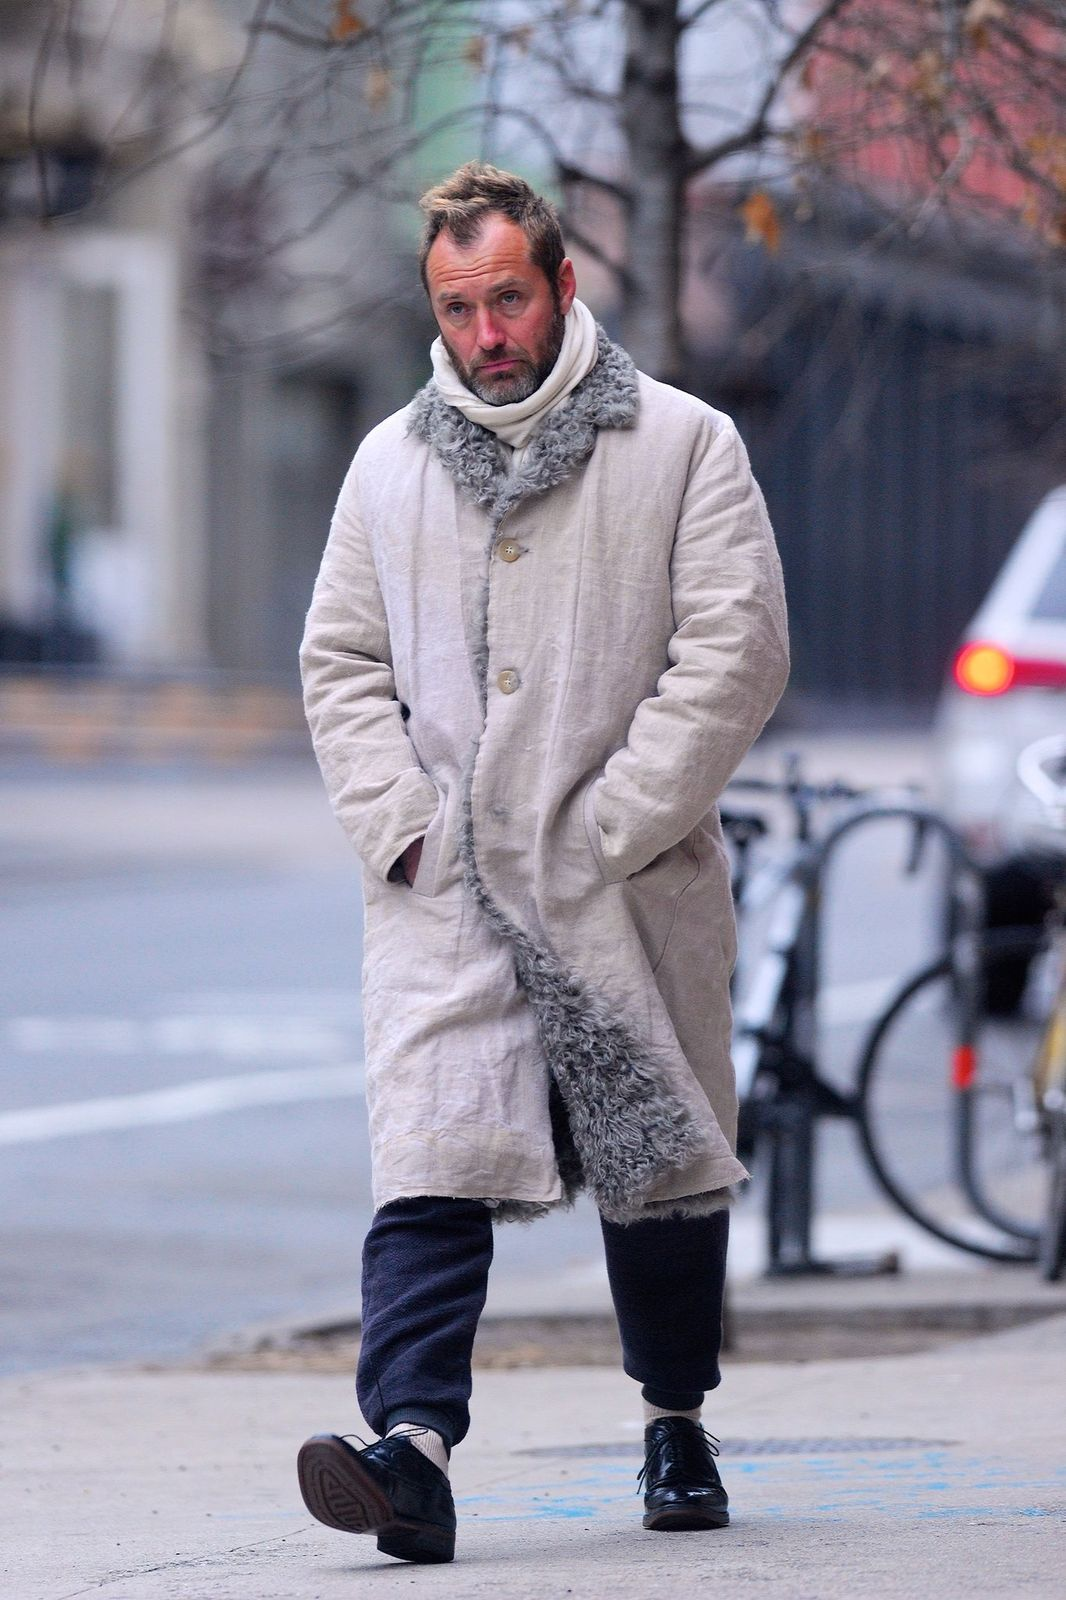 Jude Law seen out and about in Manhattan on January 31, 2020 in New York City. (Photo by Robert Kamau/GC Images)